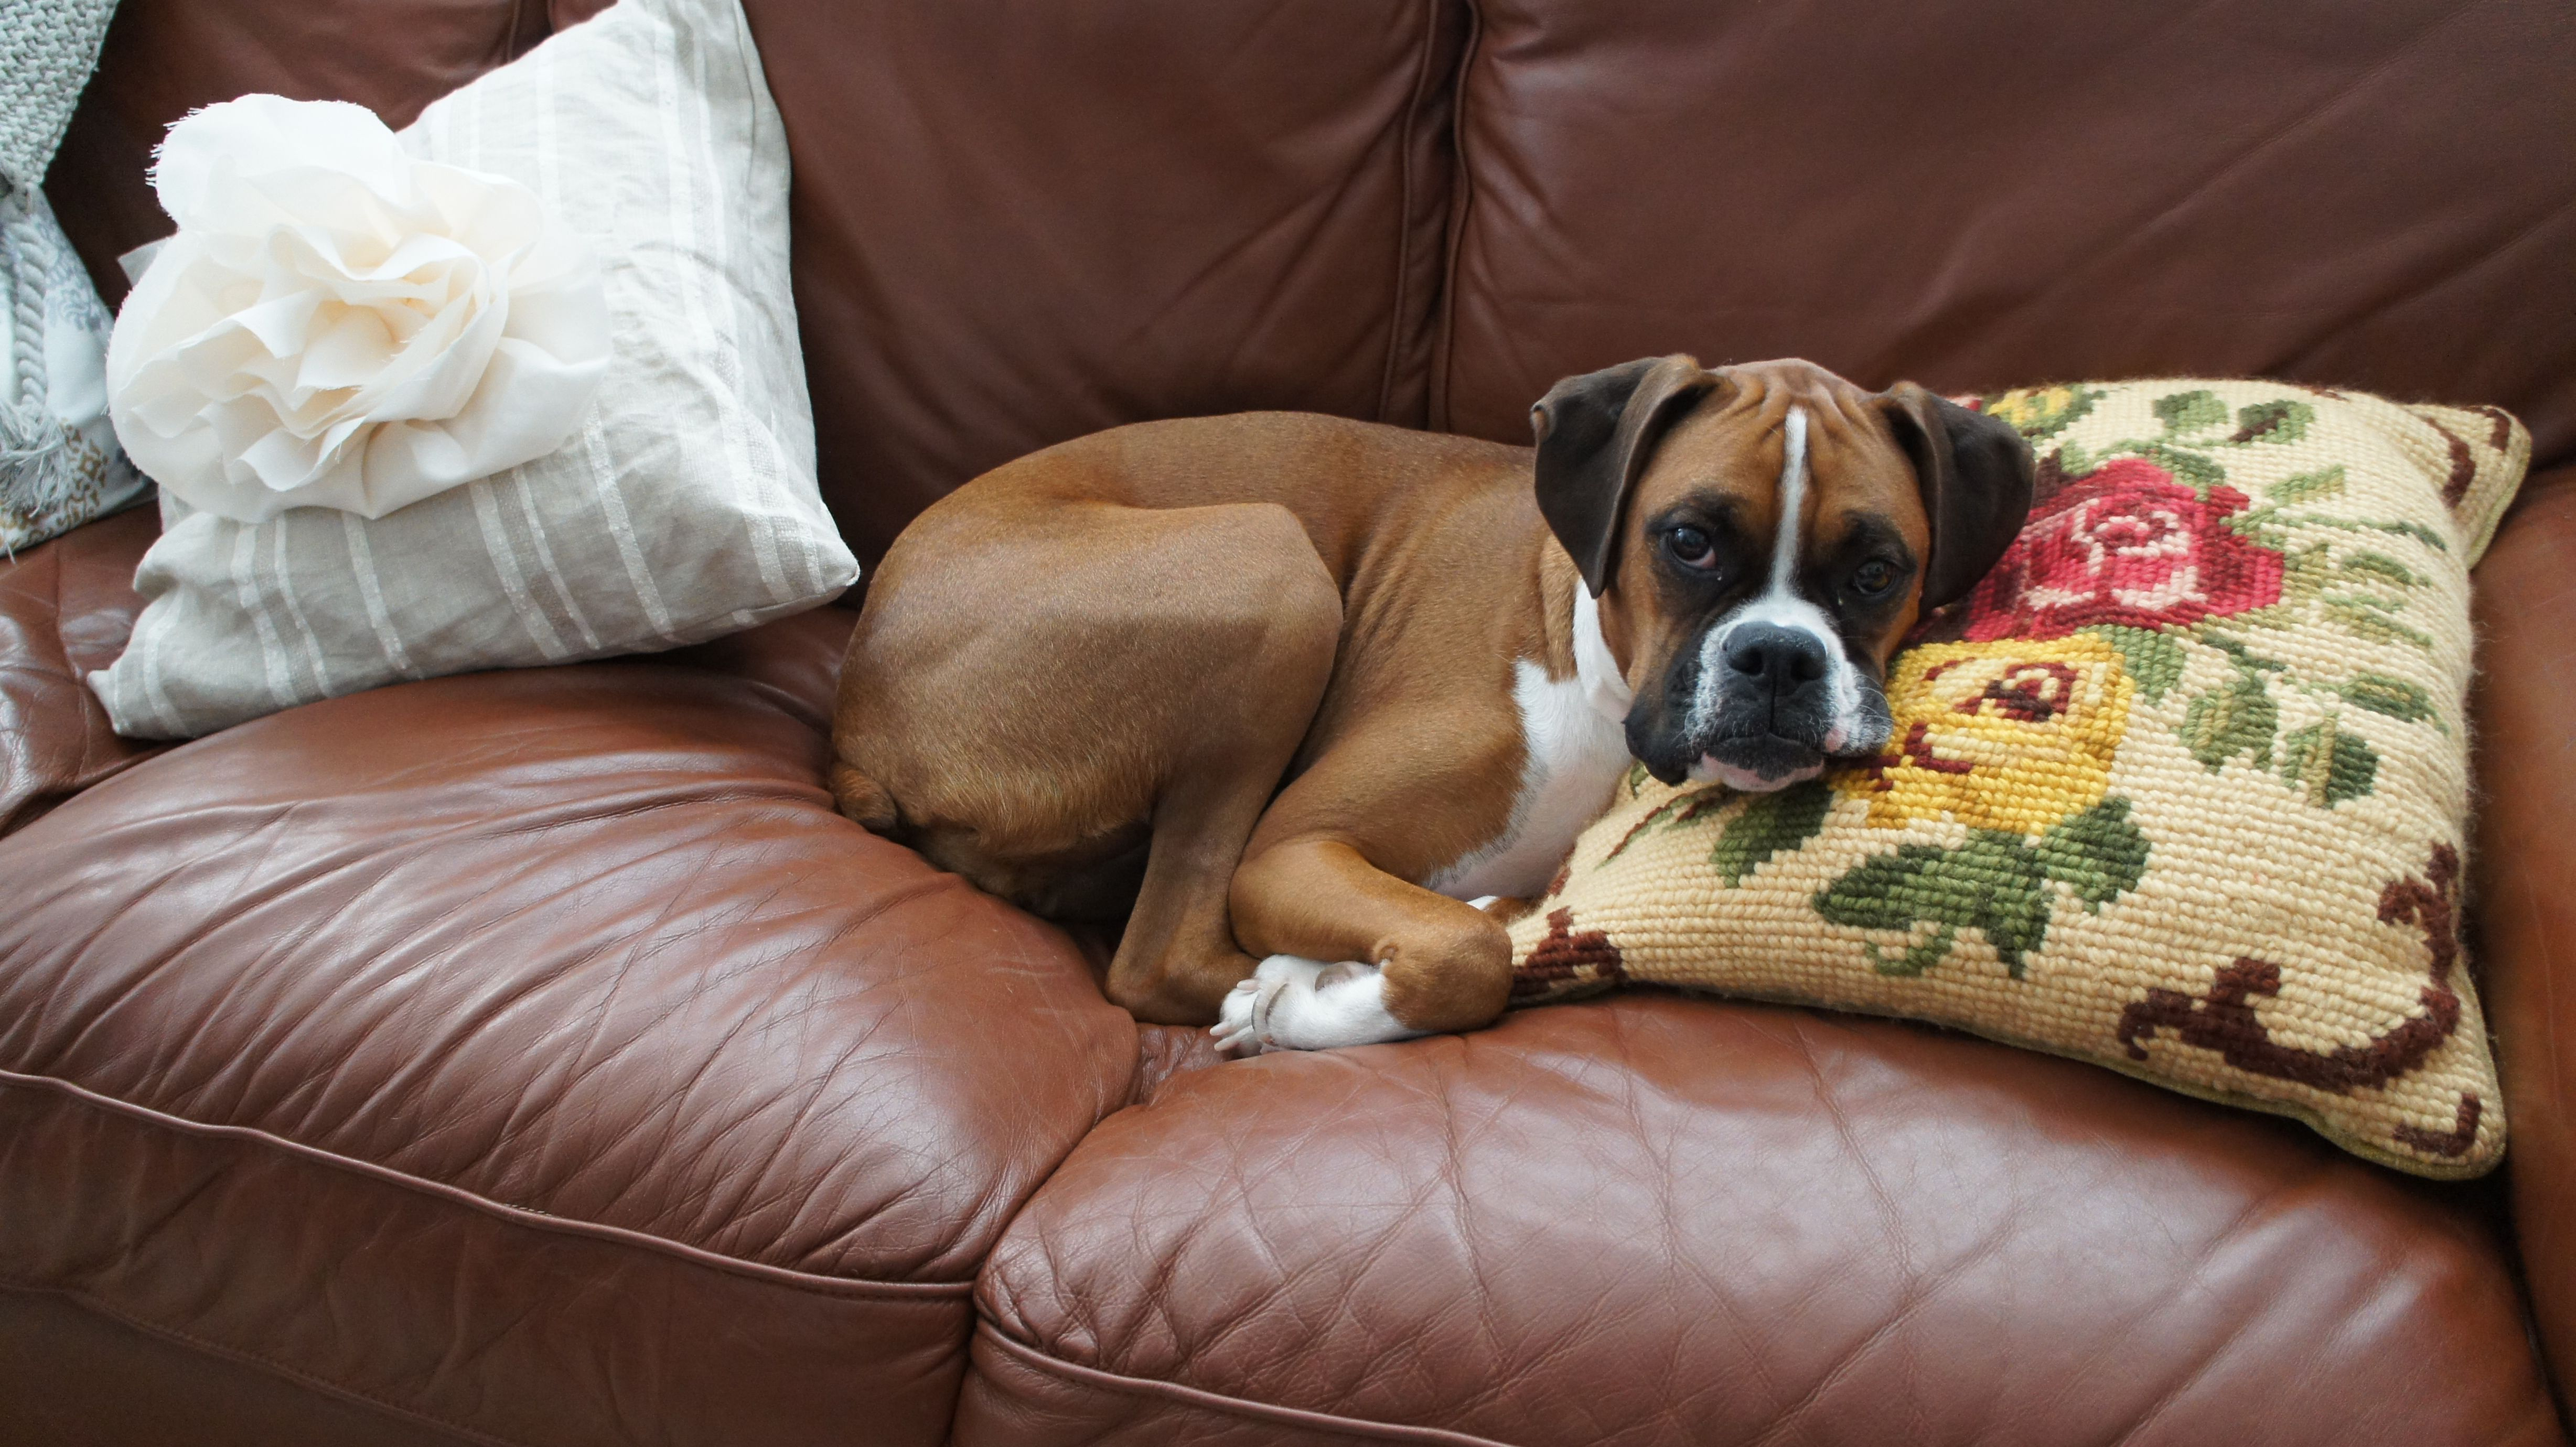 Cuddling with her favorite pillow.